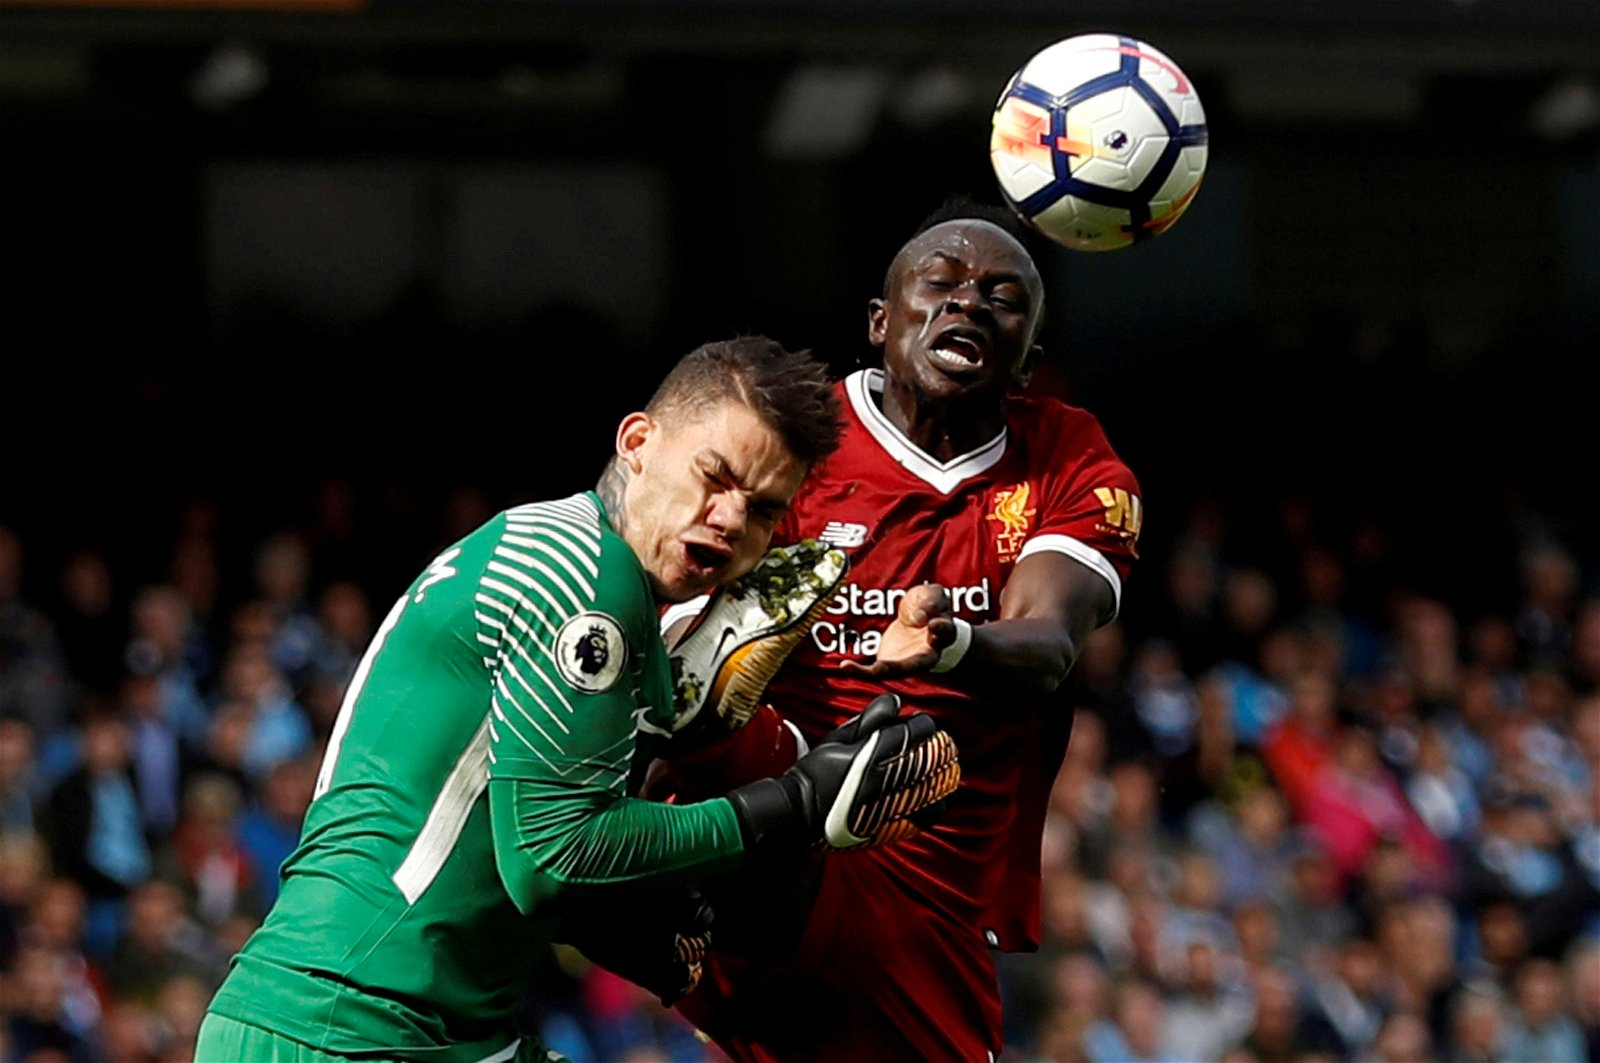 Liverpool's Sadio Mane clashes with Man City's Ederson